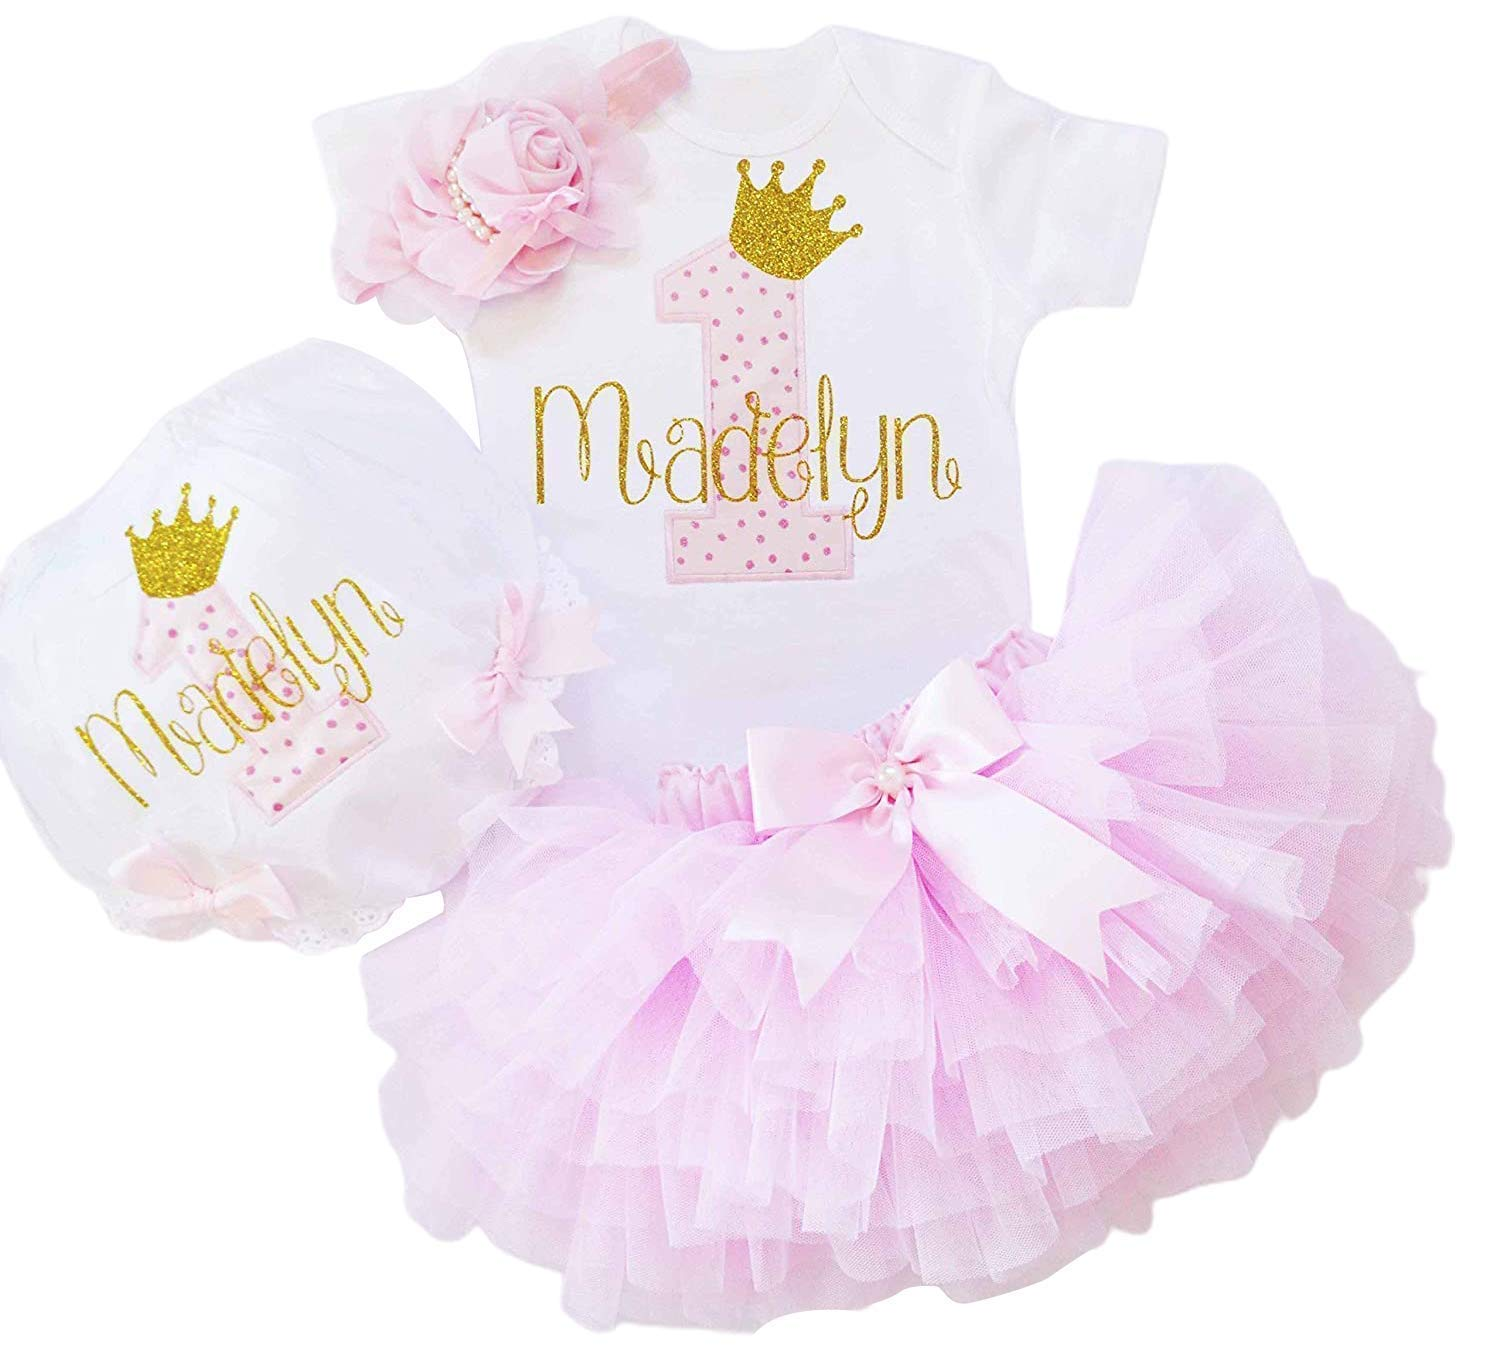 Pink and Gold Cake Smash Outfit Personalized 1st Birthday Outfit First Birthday Outfit 1st birthday Outfit Girl Birthday